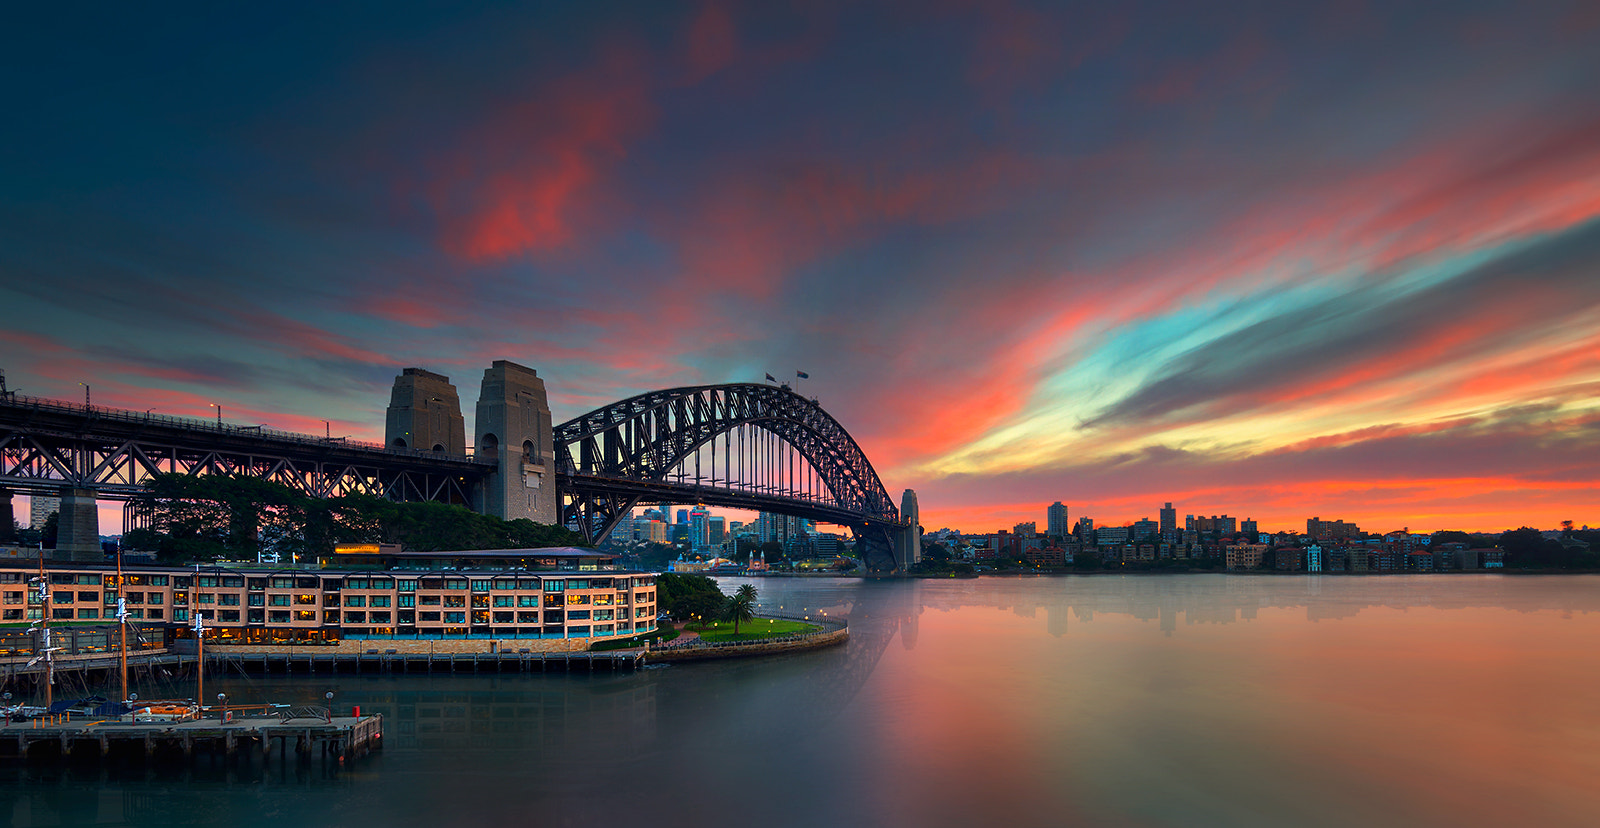 Photograph Sydney Harbour bridge by Goff Kitsawad on 500px